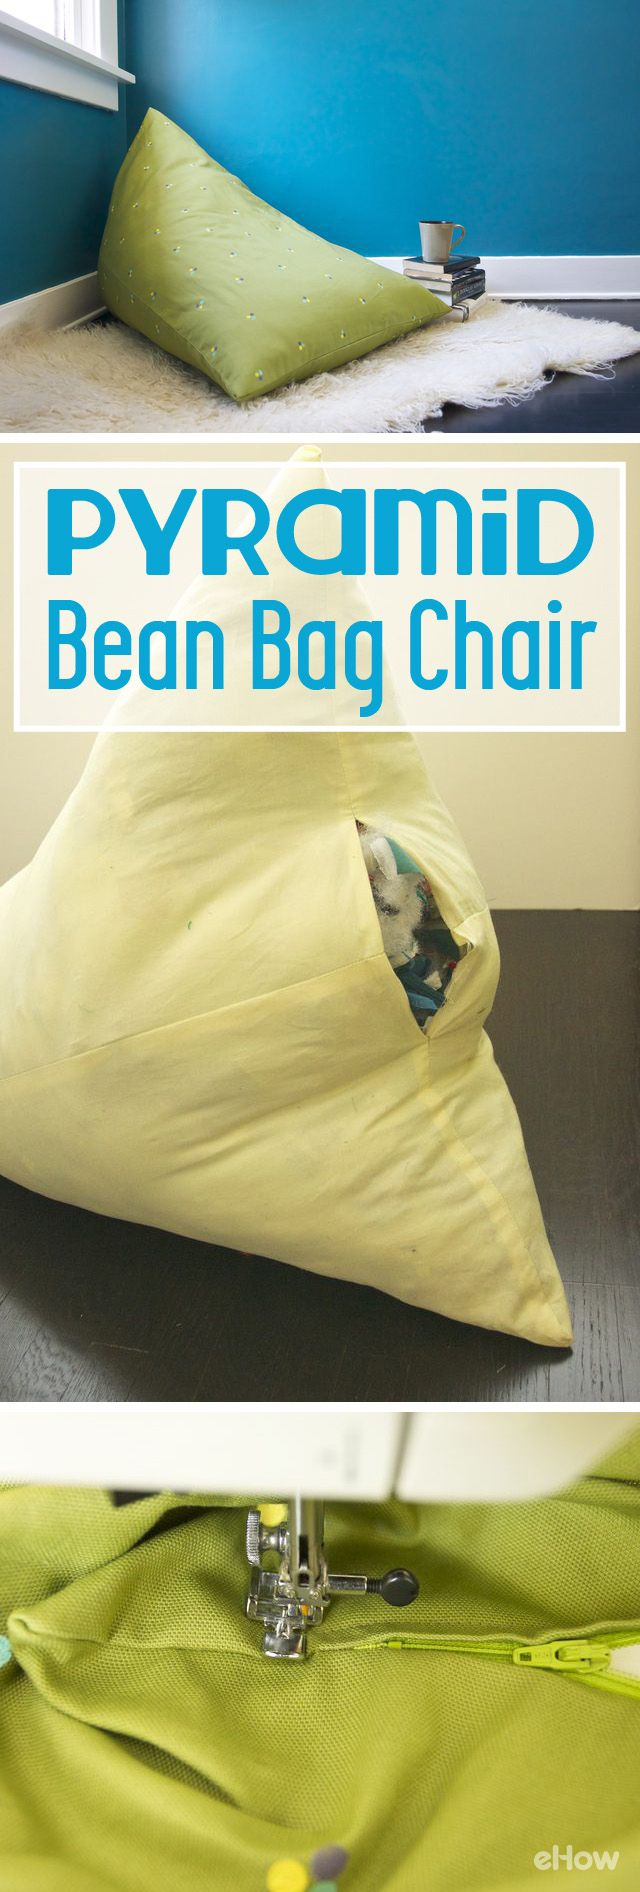 How To Make A Pyramid Beanbag Chair For A Home Sweet